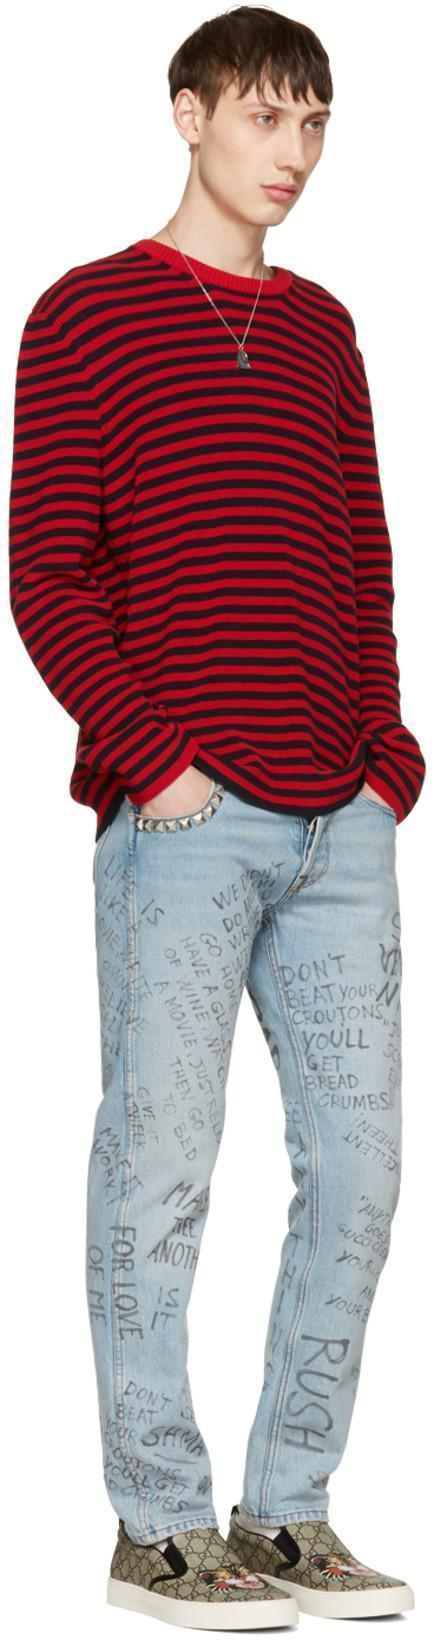 GUCCI Scribbled Writing Print Punk jeans